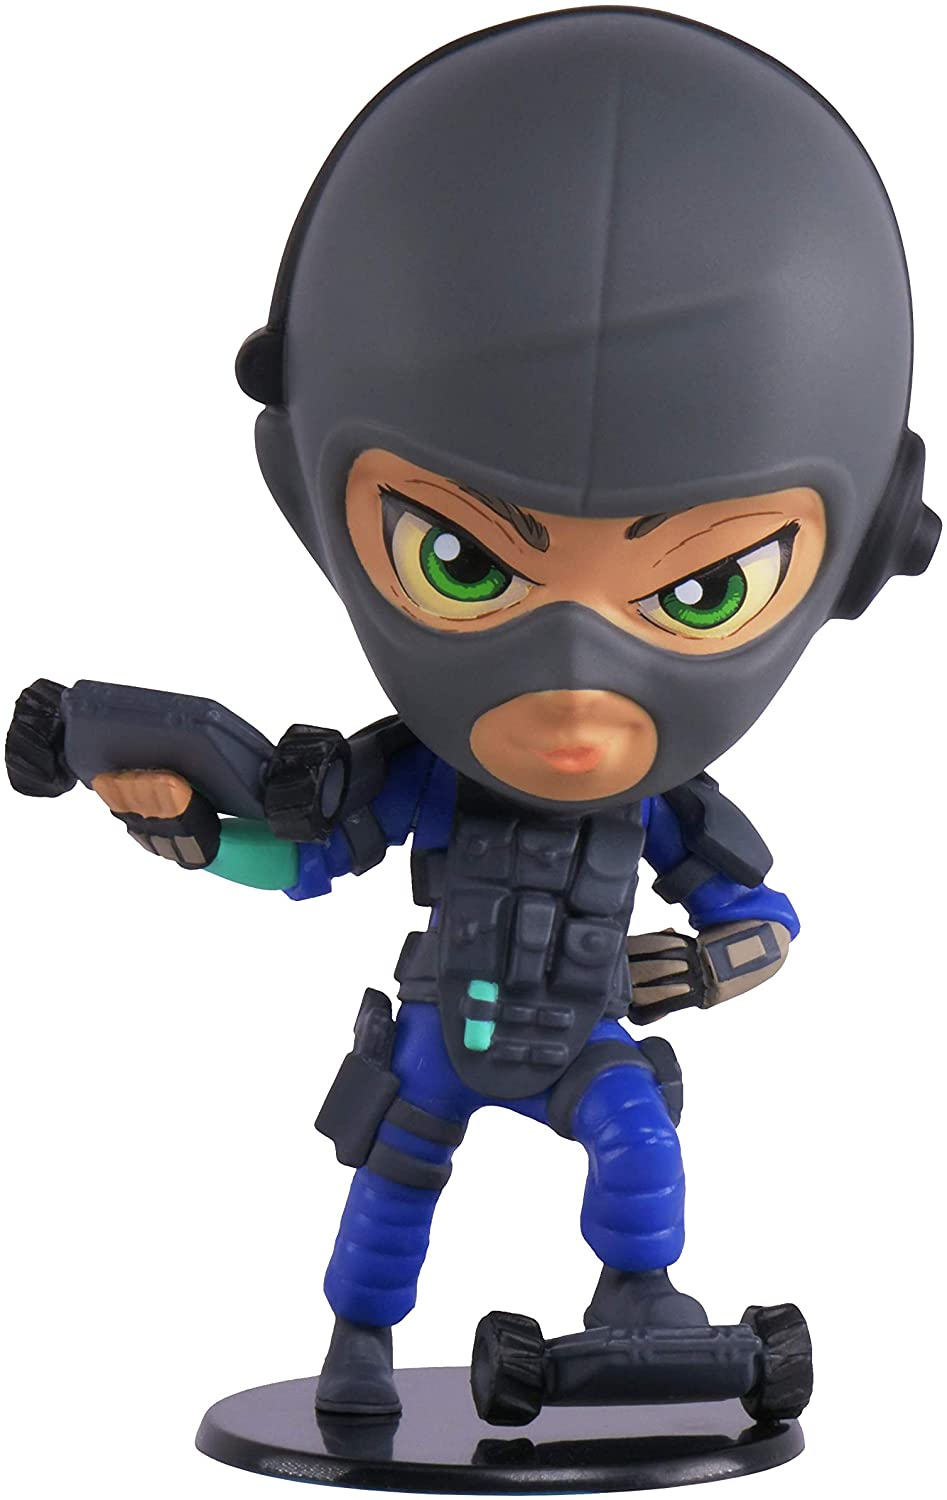 Rainbow Six Siege Collection Figurine Series 3 Twitch Chibi Figurine